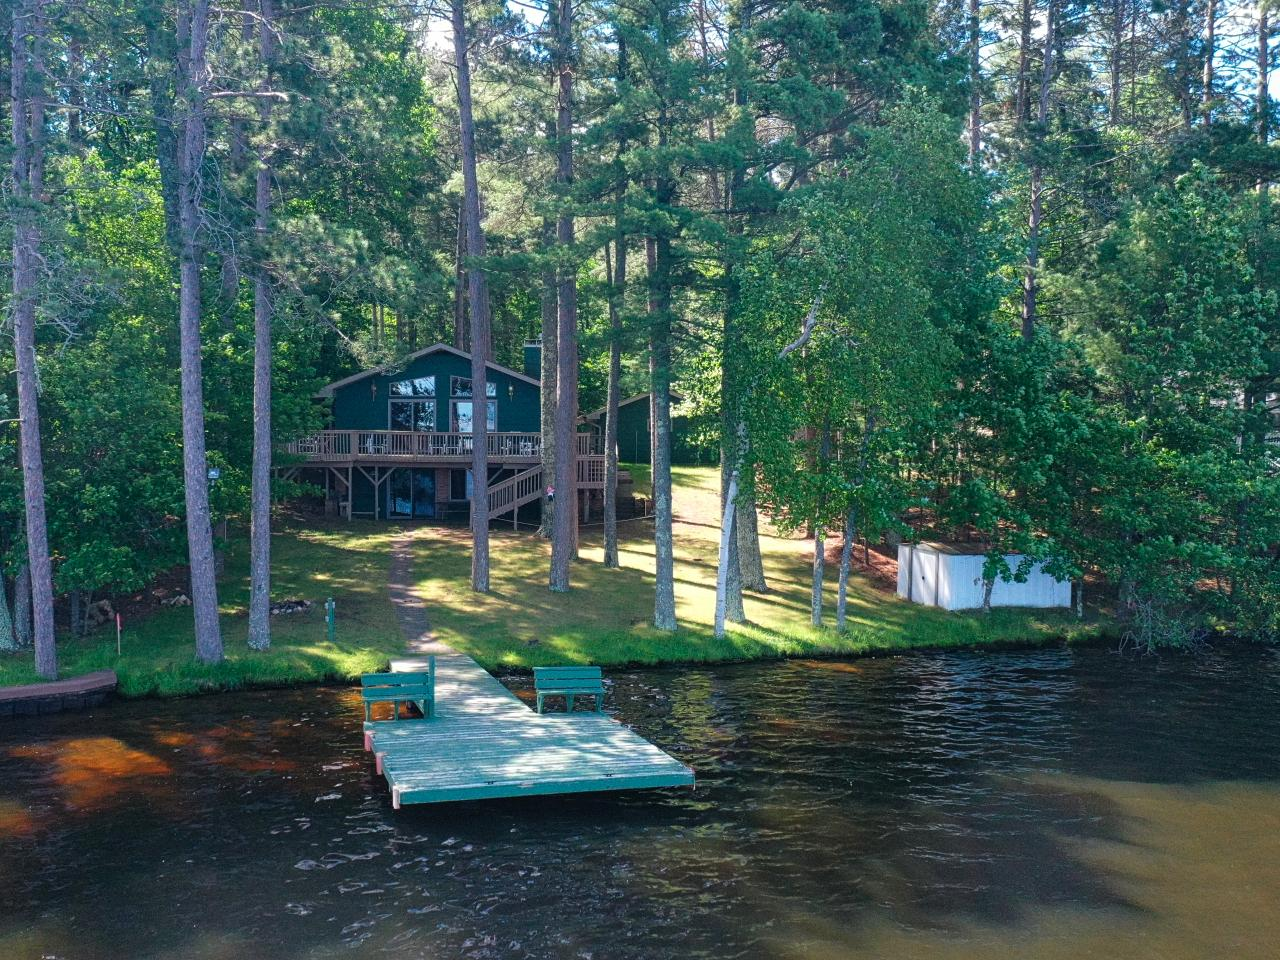 """The best location you can ask for on the Eagle River Chain of Lakes is on Wooded Lane. Situated on 1012 acre Catfish Lake, it is nestled in among some of the finest homes on the chain and it is in the middle of """"Boathouse Row"""". This 3+BR/2BA home offers 2201 sq ft of living space. The home features 2 stone FP's (gas) & an open concept living/dining/kitchen. It has an open & airy feel w/cathedral ceilings & wonderful lake views. The kitchen is fully equipped & has an island. The walkout lower level has 2BR's, & family room w/FP & a bar. When guests arrive, there is a """"honeymoon suite"""", an adorable 15' x 13' guest cottage w/bath. The lakeside deck is where you will want to relax in the summer. There are 2 garages so you can store most anything! One garage is over 1400 sq. ft. and the other is over 600 sq ft. The driveway is paved & the slope to the lake is gentle. There is a lakeside shed and the beach is perfect for swimming. The sunsets are an unforgettable experience there."""